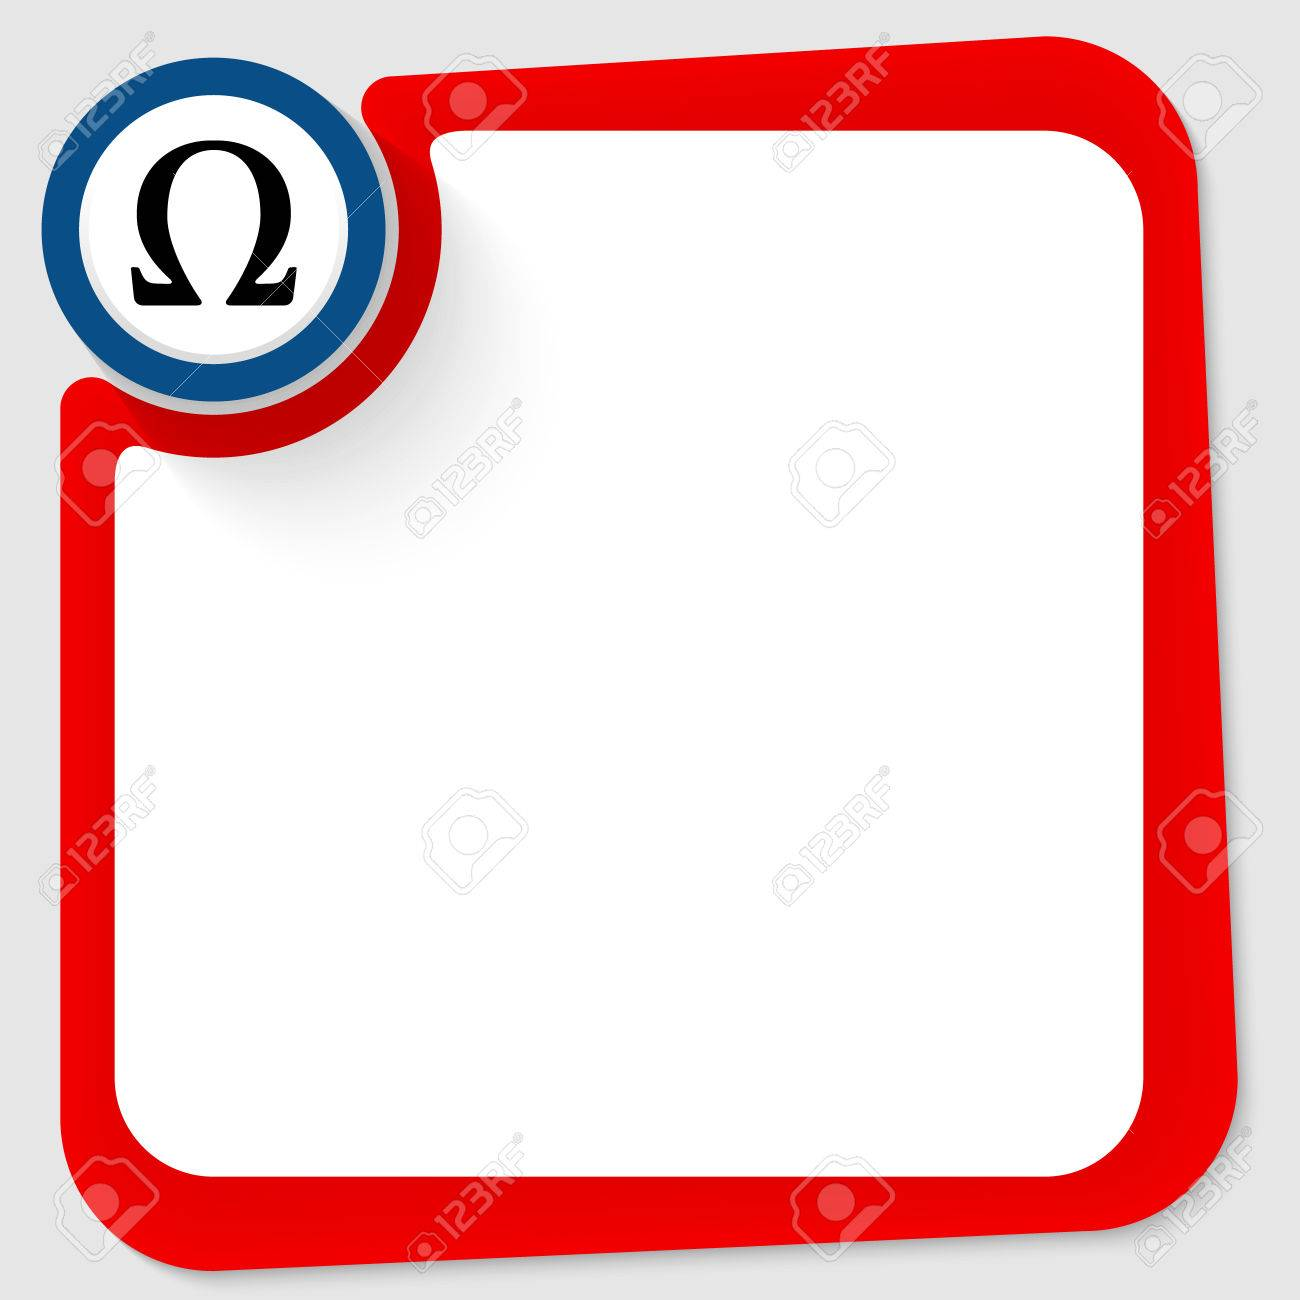 Blue Circle With Omega Symbol And Red Frame For Your Text Royalty